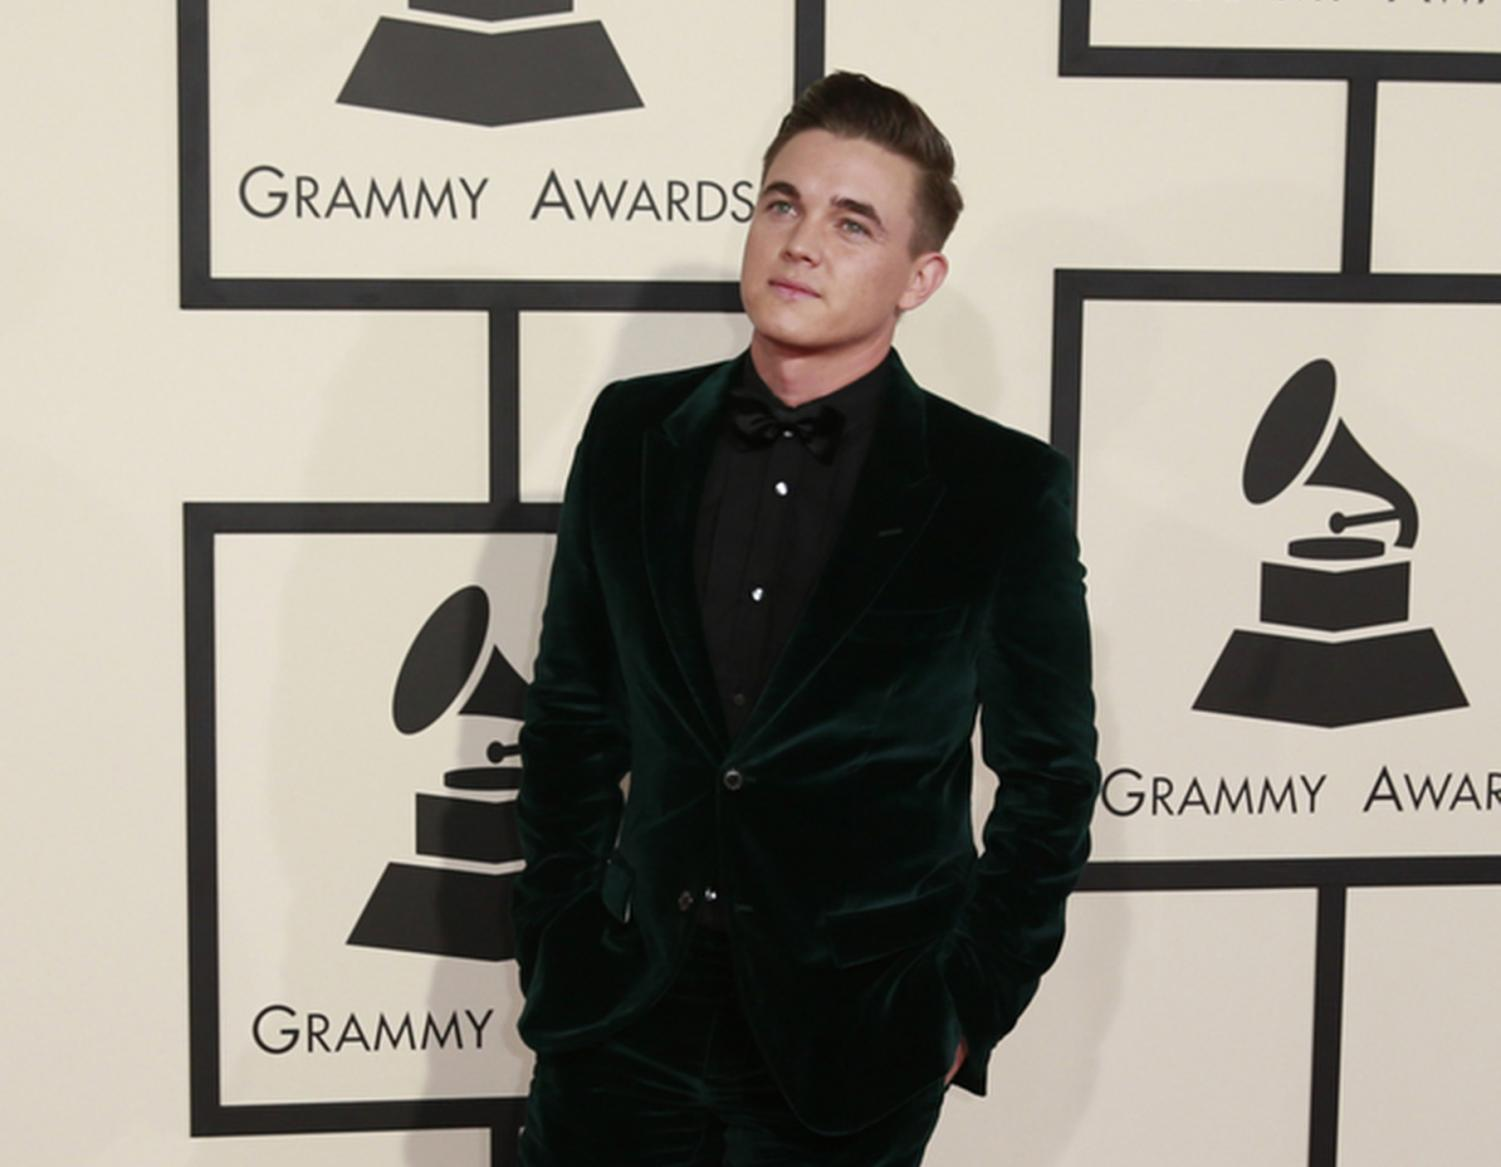 JESSE MCCARTNEY ON HIS BIGGEST SONG ACHIEVEMENT